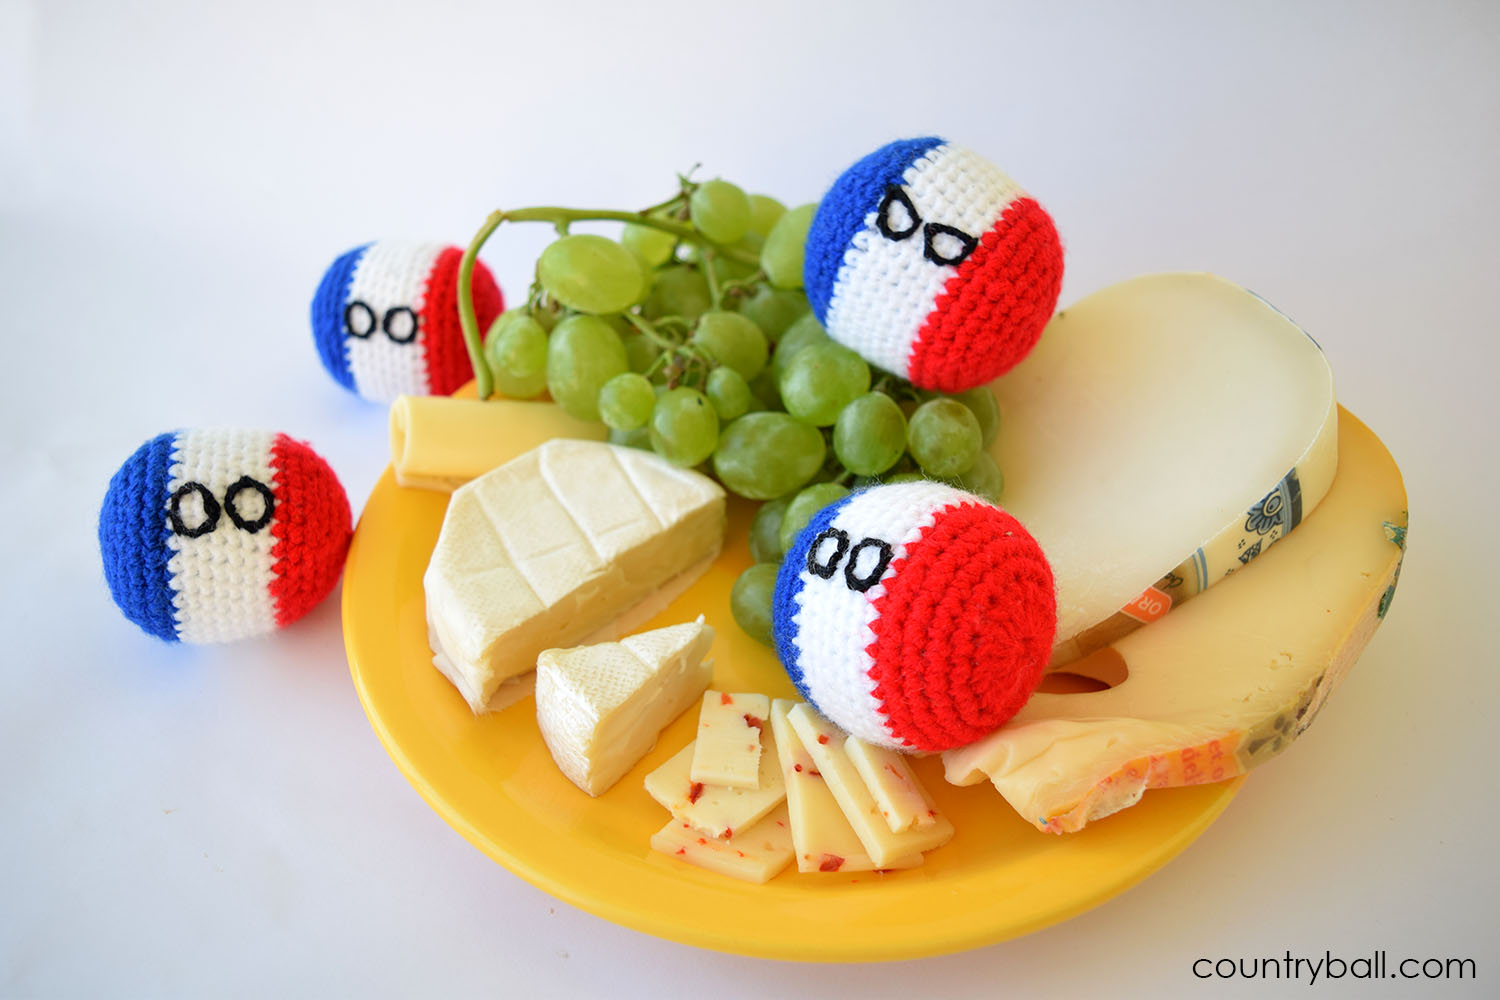 Franceball with some Cheese Varieties